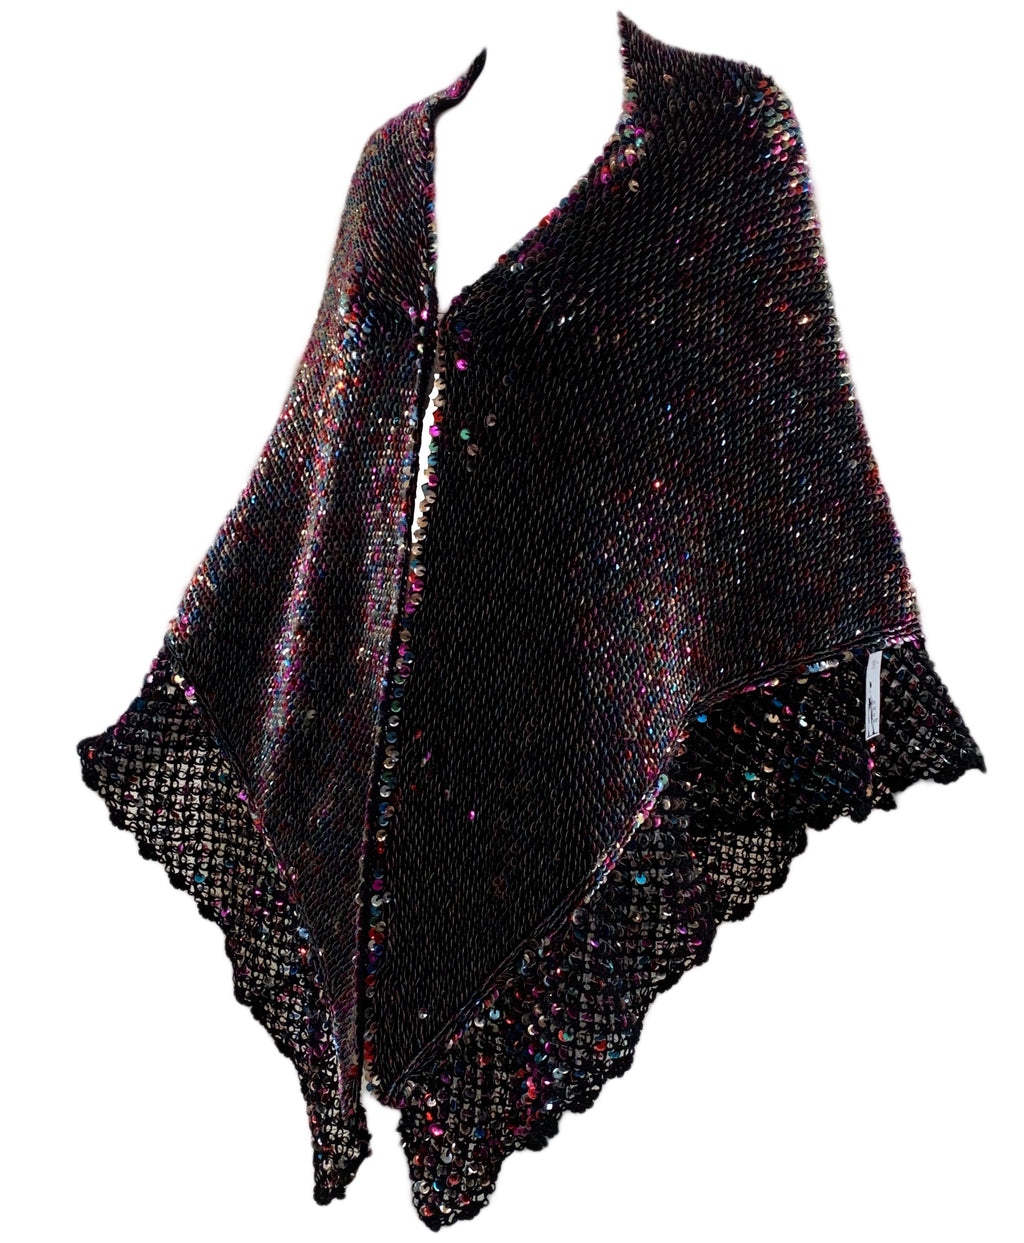 50s Black Crochet Shawl with Rainbow Sequins Side 1 of 4